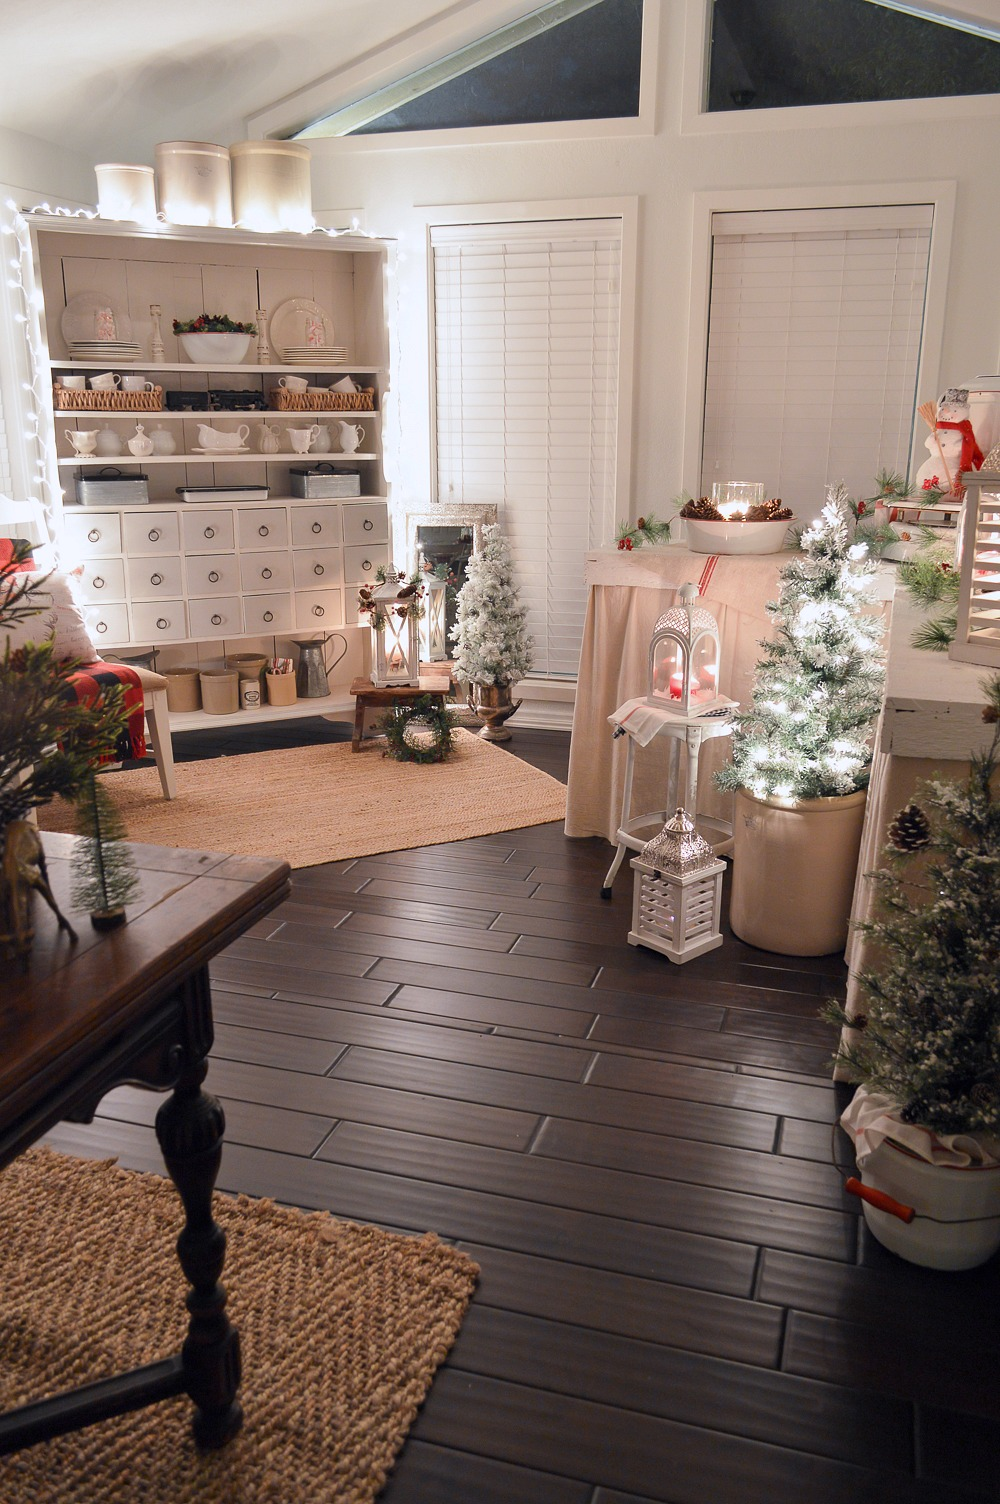 Merry Christmas Nighttime Home - Vintage holiday decorating, apothecary cabinet. Crock collection, plaid accents.